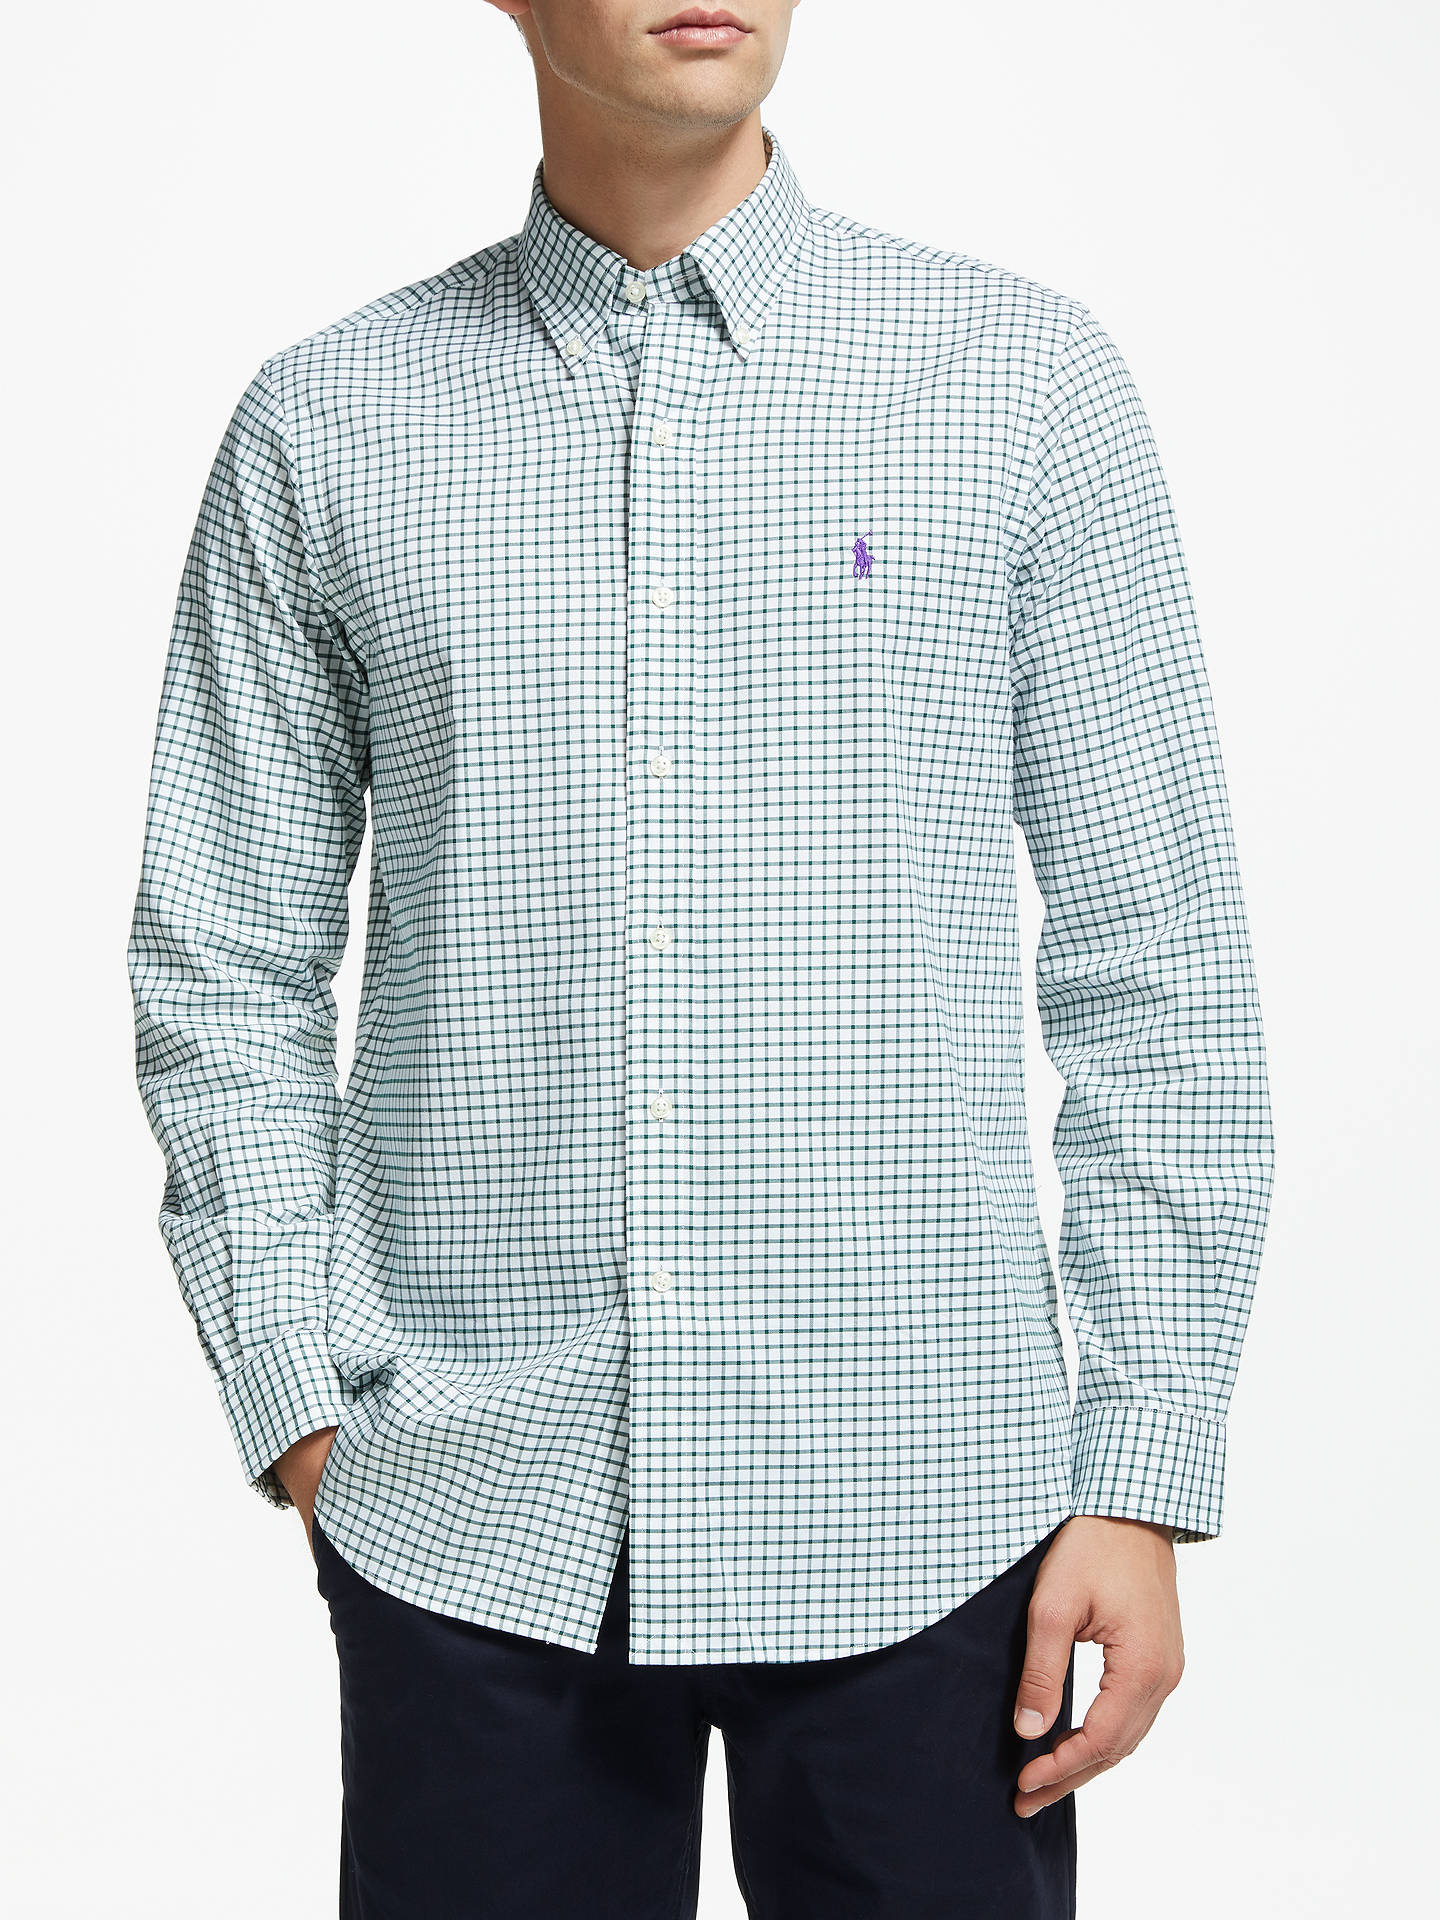 Buy Polo Ralph Lauren Check Sports Shirt, Evergreen/White, M Online at johnlewis.com